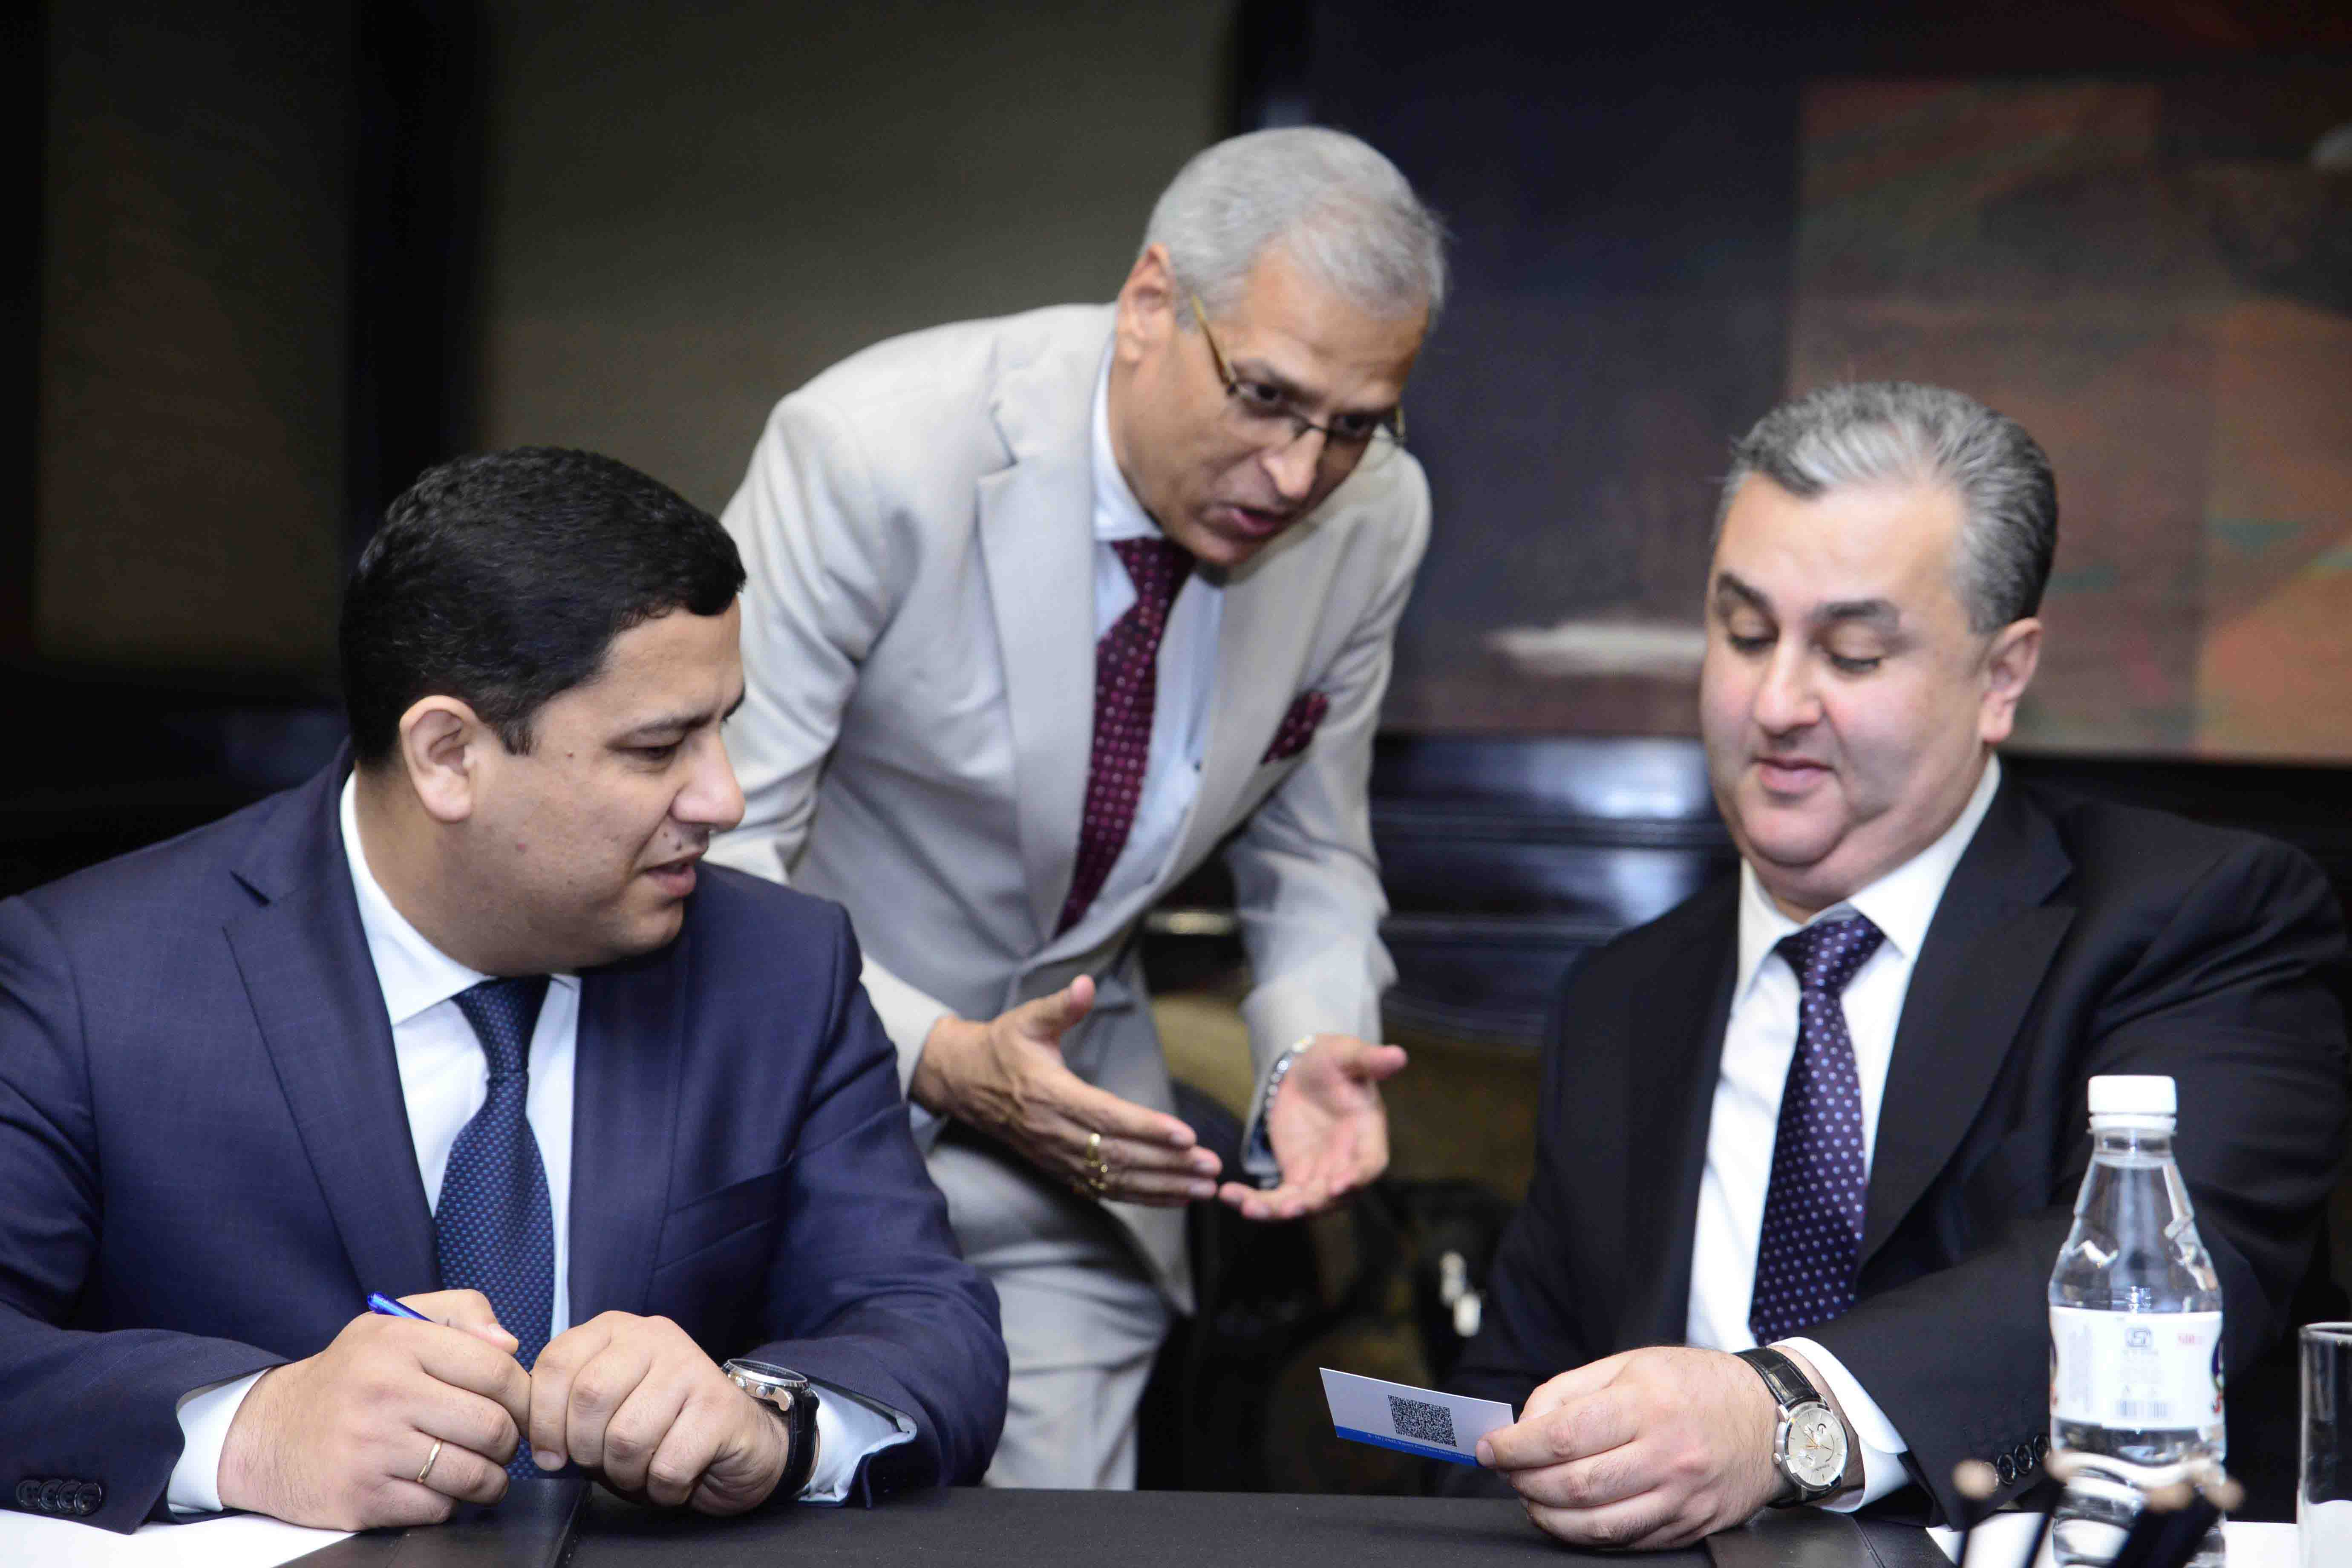 Mr Rajiv Arora, Executive Vice President, Muez Hest met & welcomed H.E. Mr S. Kholmuradov, Hon'ble Deputy Prime Minister of the Republic of Uzbekistan. During interaction with H.E. Mr S. Kholmusadov, Hon'ble Deputy Prime Minister Mr Rajiv Arora introduced about Muez Hest, as a leading professional project engineering company having specialization in the Edible Oils and Oleochemicals sector. H.E. Mr S. Kholmusadov, Hon'ble Deputy Prime Minister was very pleased to learn about Muez Hest and its activities and was also pleased to know that Muez Hest has successfully executed five projects in Uzbekistan and congratulated for signing the MOU.